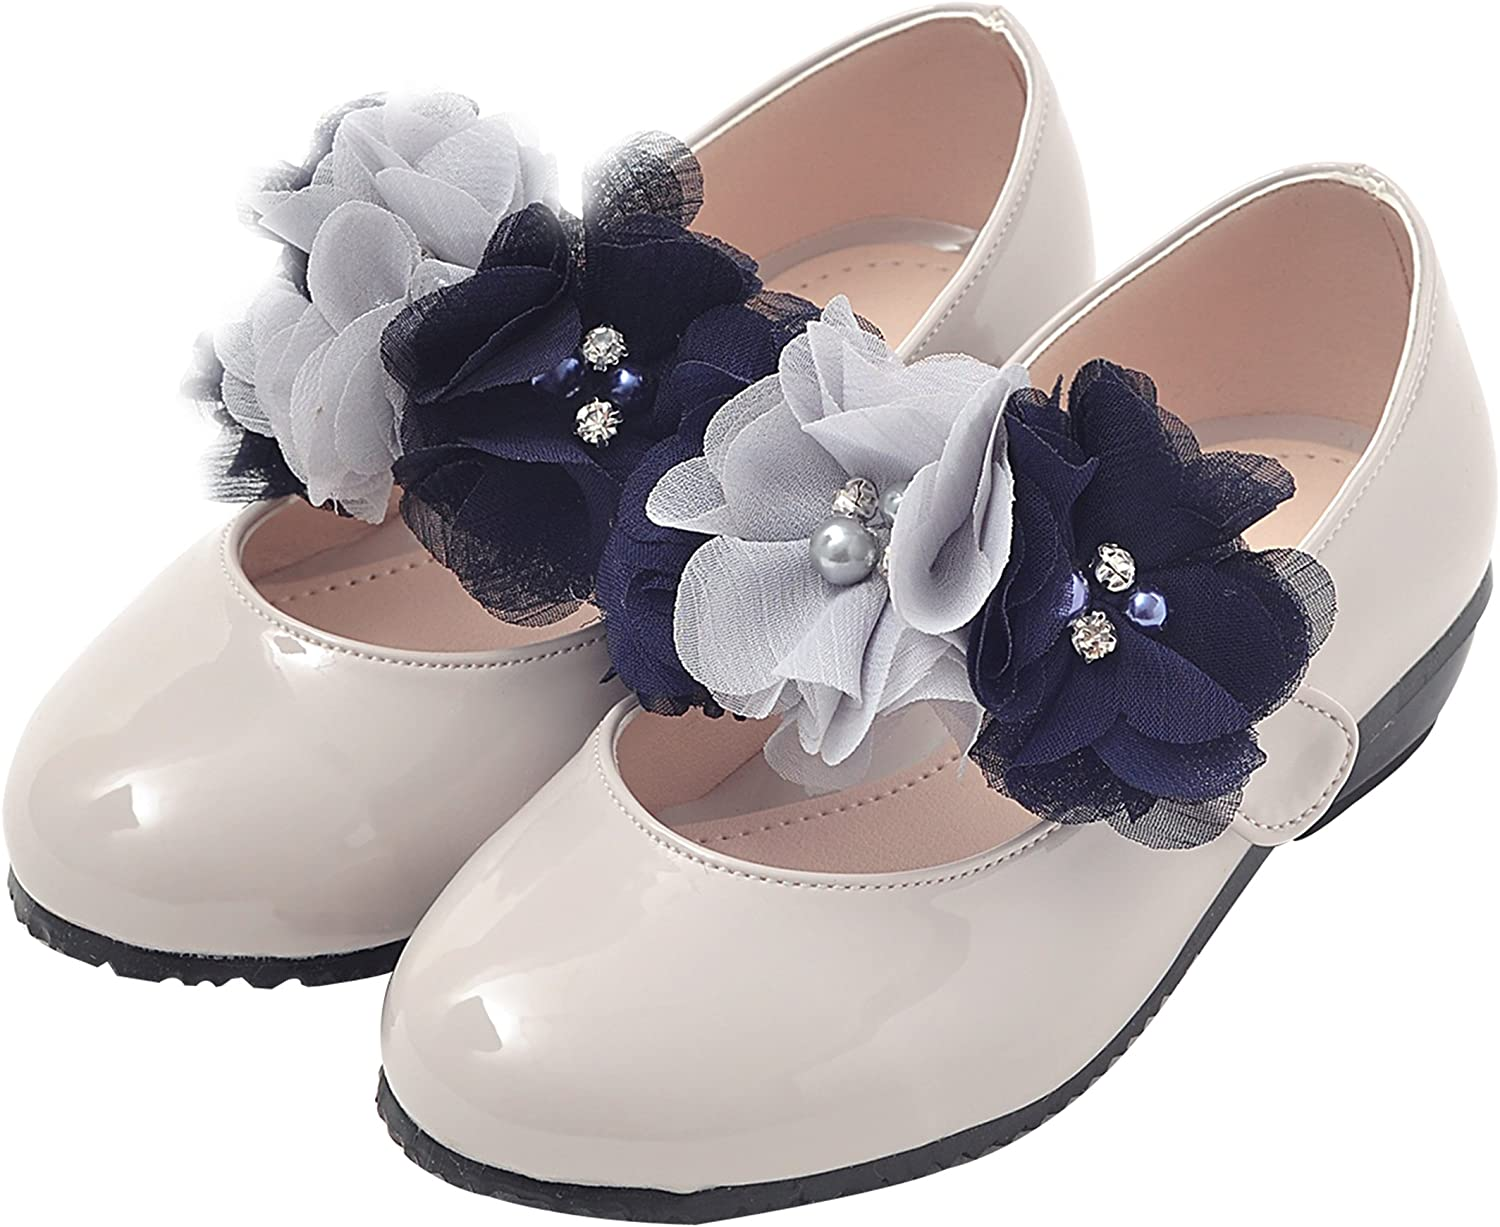 Ozkiz Little Girls Mary Jane Dress Flat Flats OFFicial store Shoe Toddler Our shop OFFers the best service